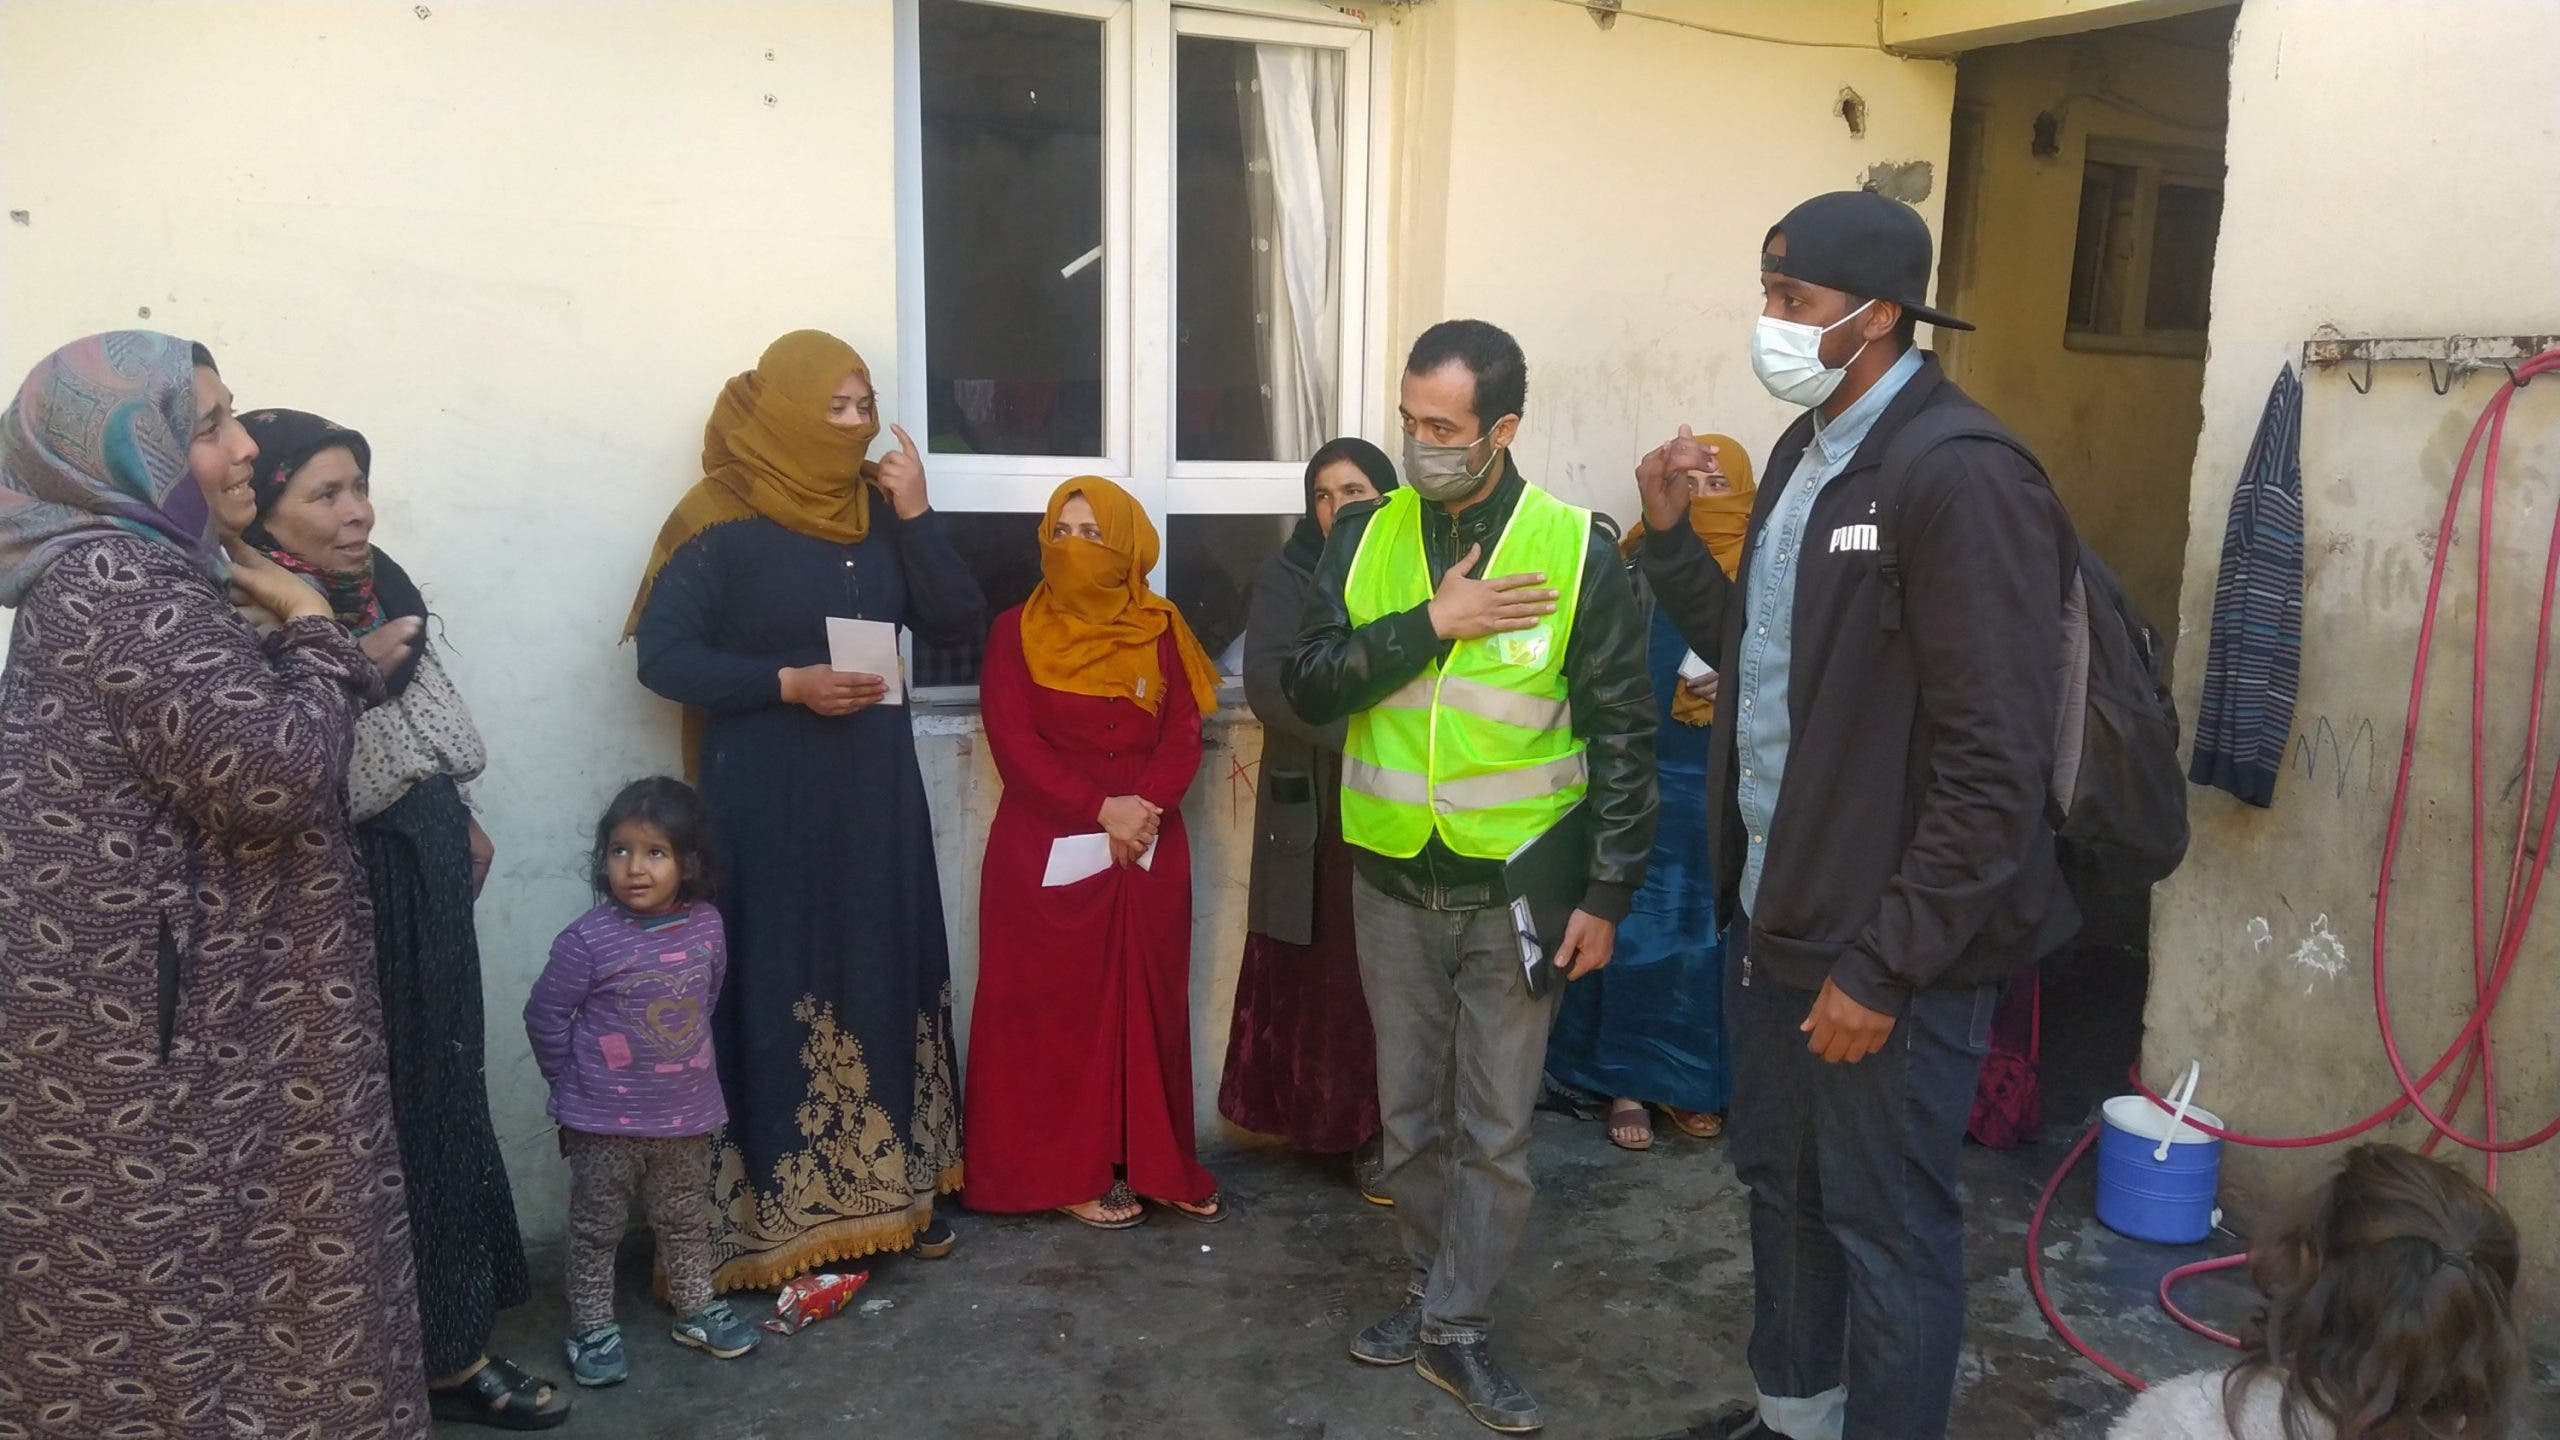 Former Somalia refugee reaches out to Syrians in Turkey